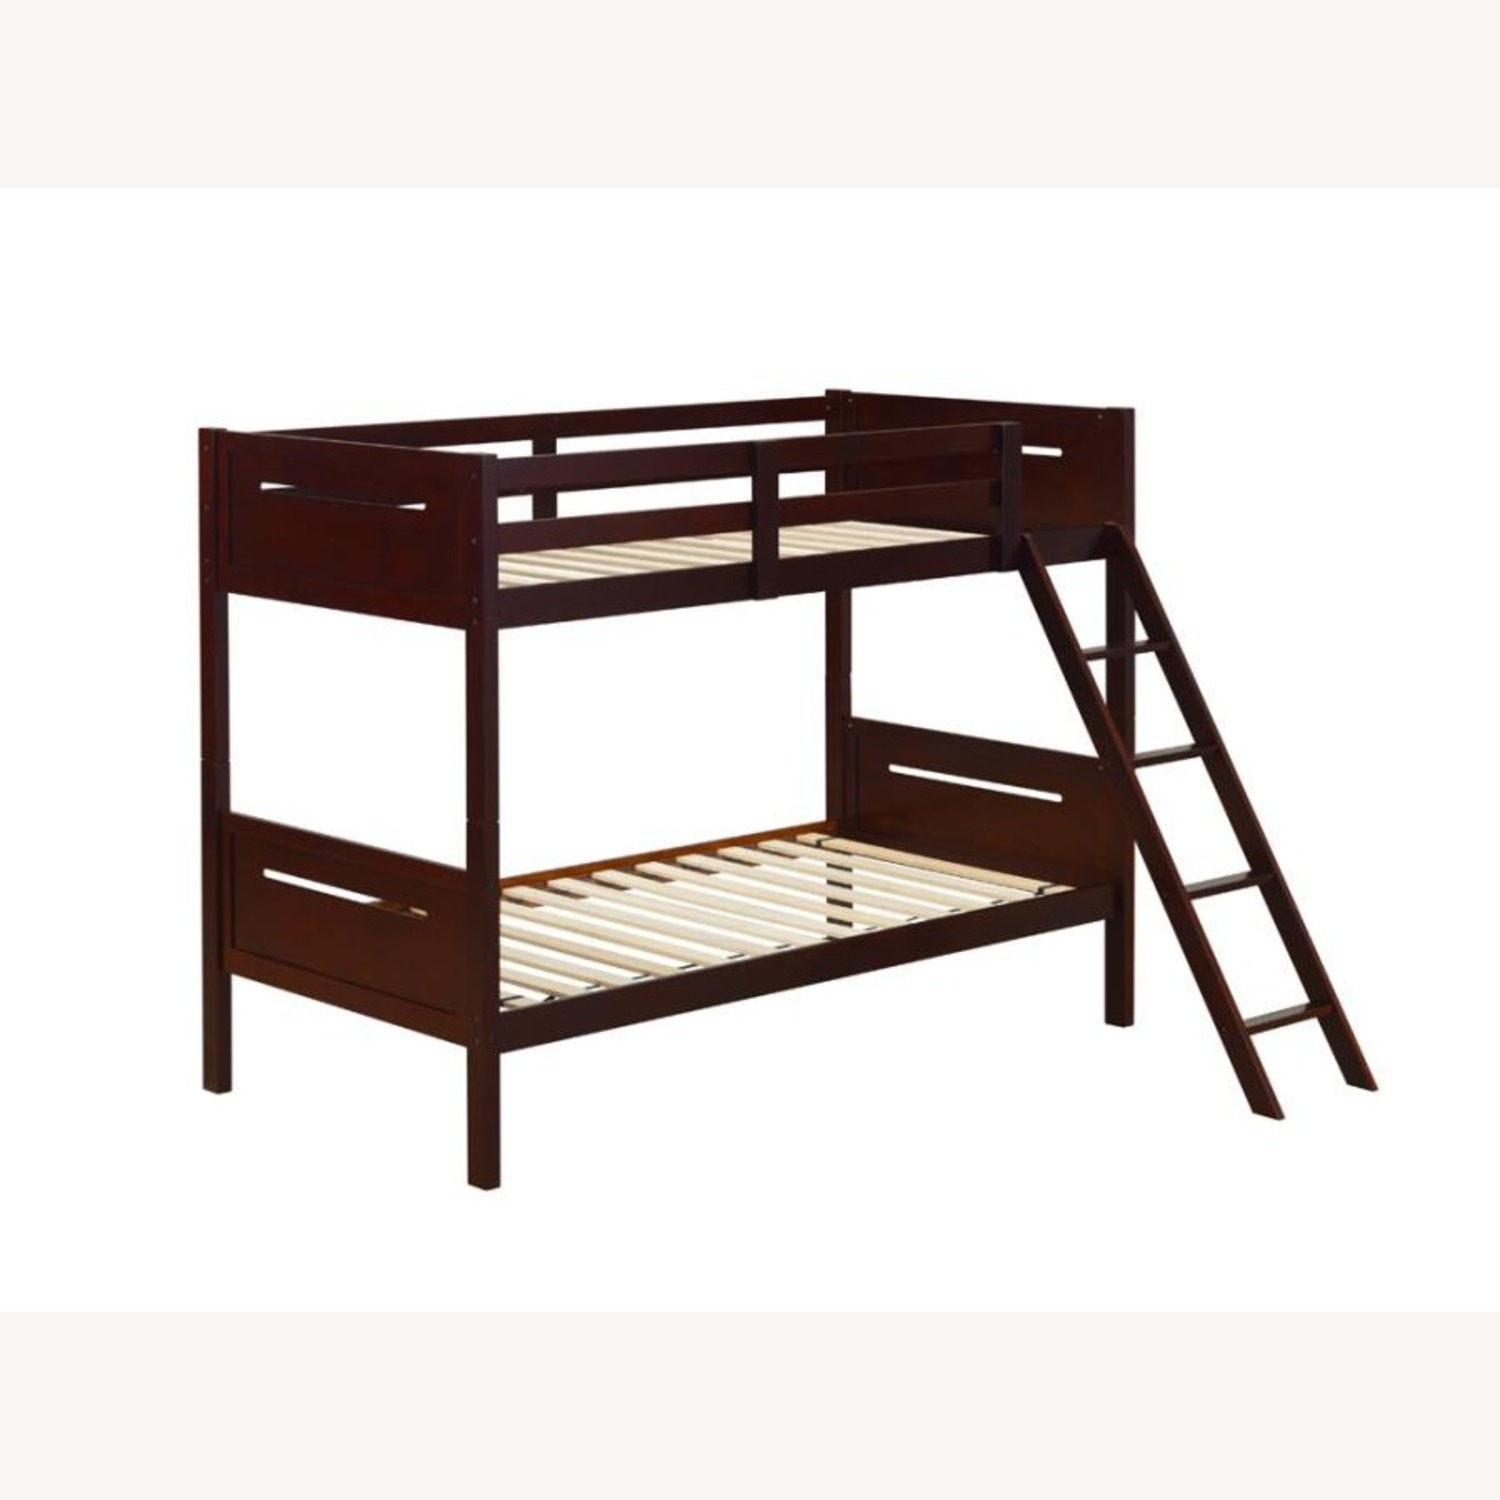 Bunk Bed In Espresso Solid Rubberwood Finish - image-1